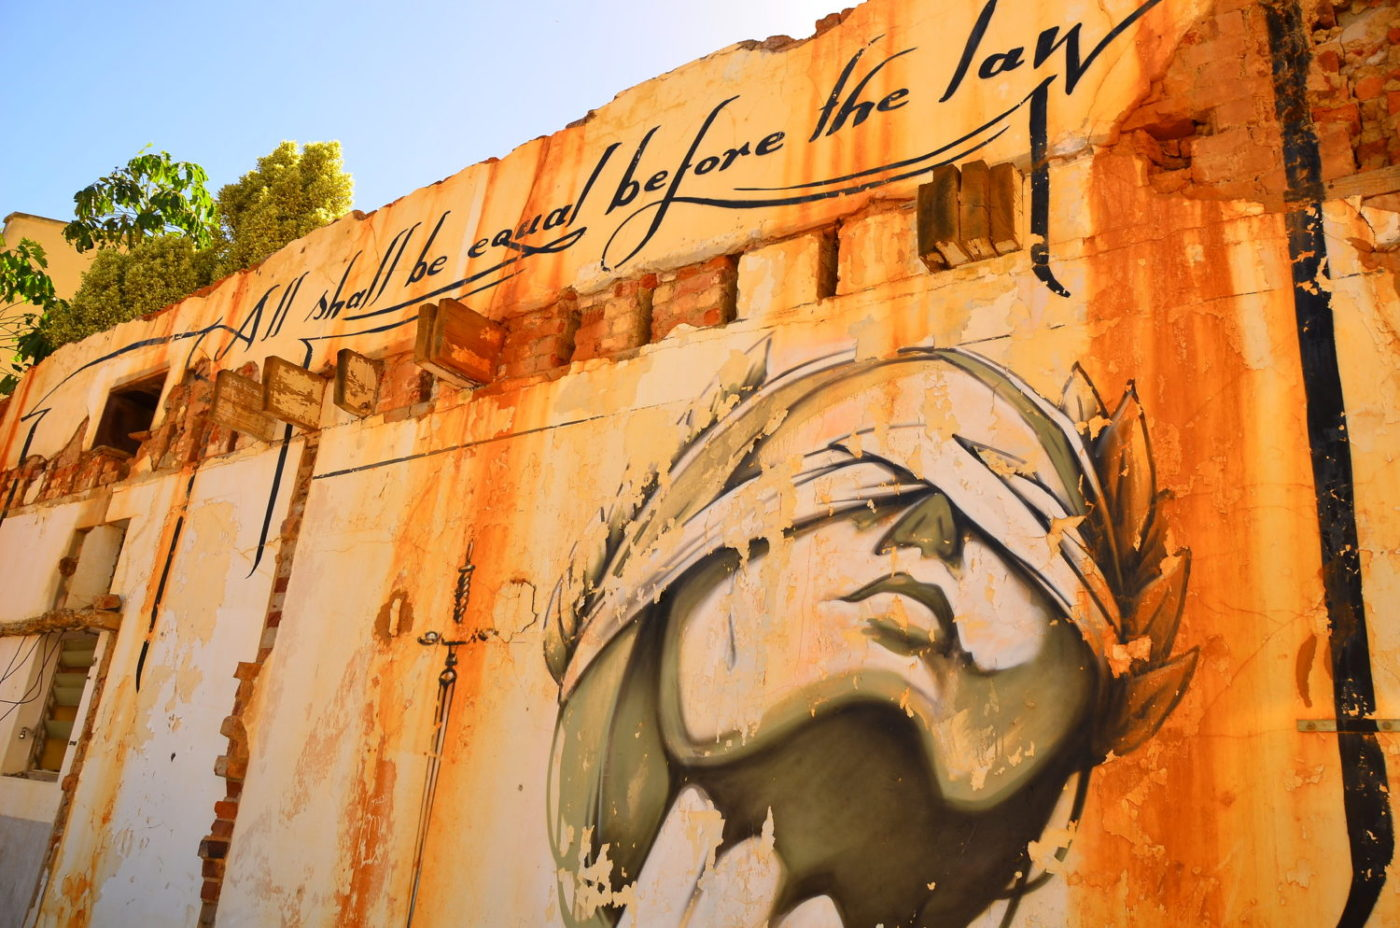 All-shall-be-equal-before-the-law-justice-graffiti-in-Cape-Town-South-Africa-by-Ben-Sutherland-1400x928, Afrikan, New Afrikan, Black humanity, Behind Enemy Lines